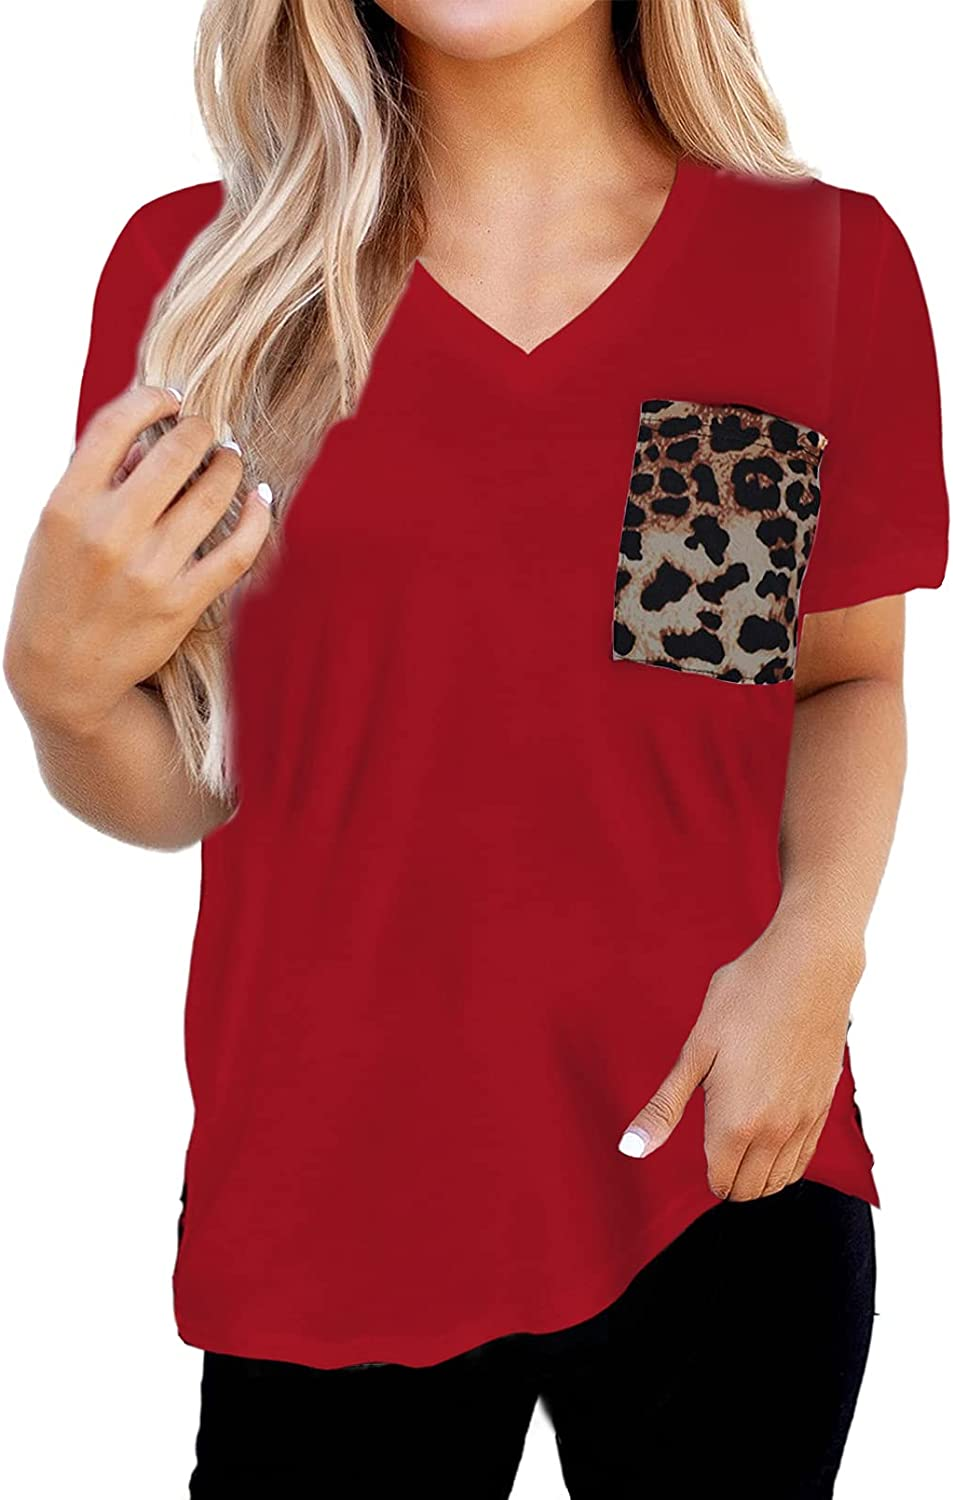 Dokotoo Shirts Sale SALE% OFF for Women Round Los Angeles Mall Sleeve Neck Casual T Short